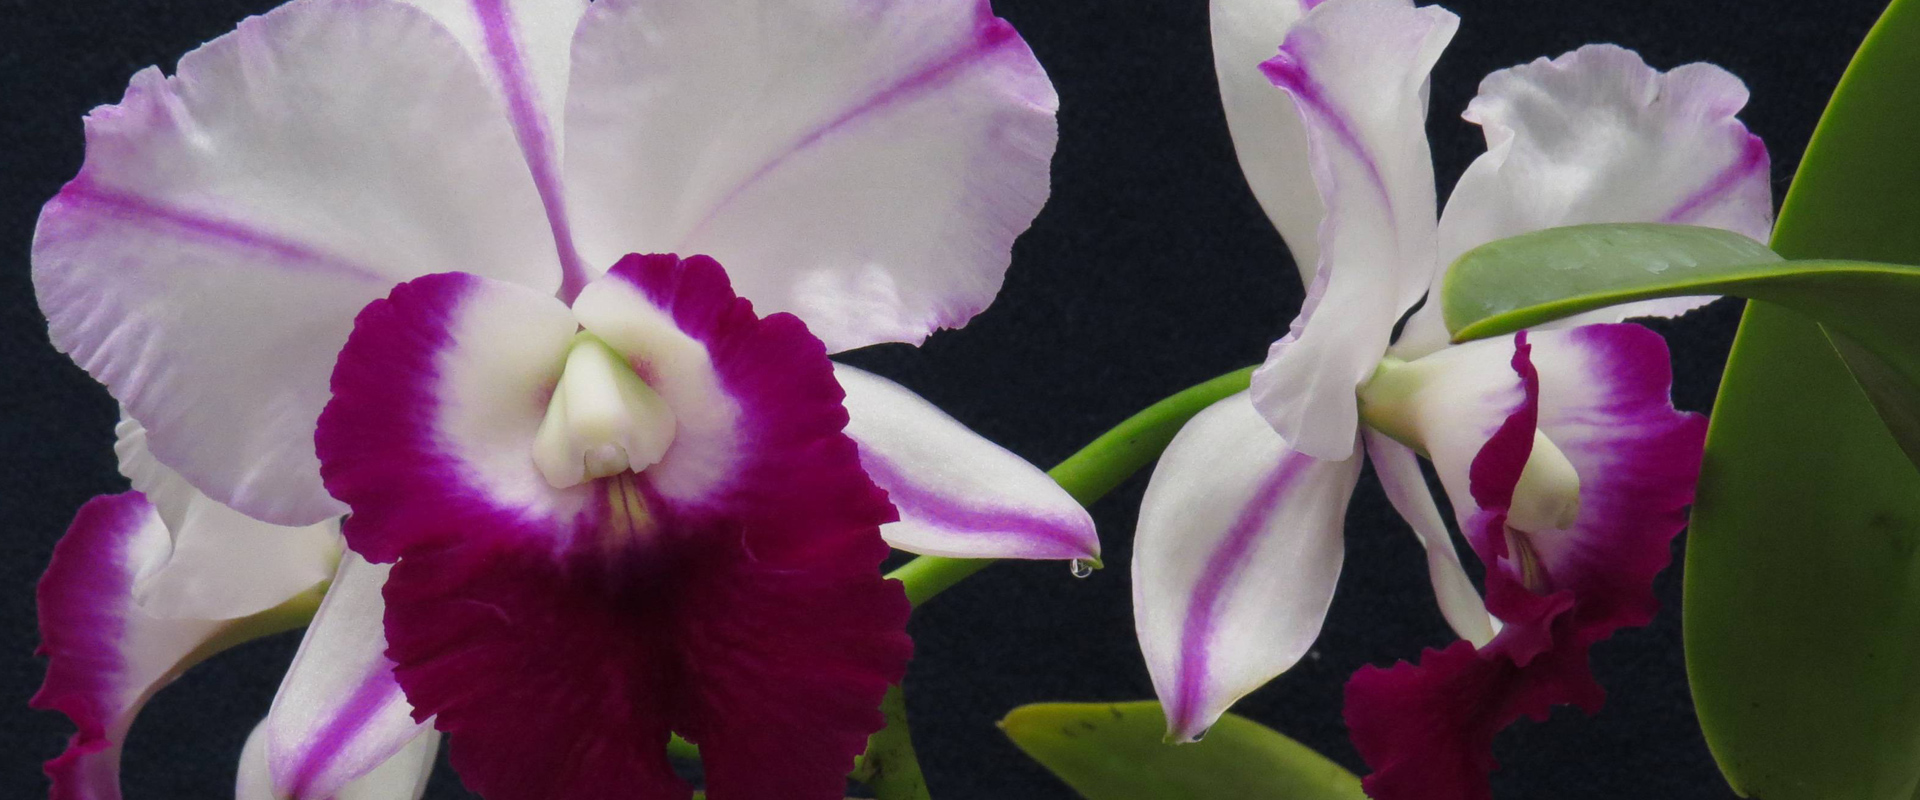 Victoria orchid society spring show schedule header